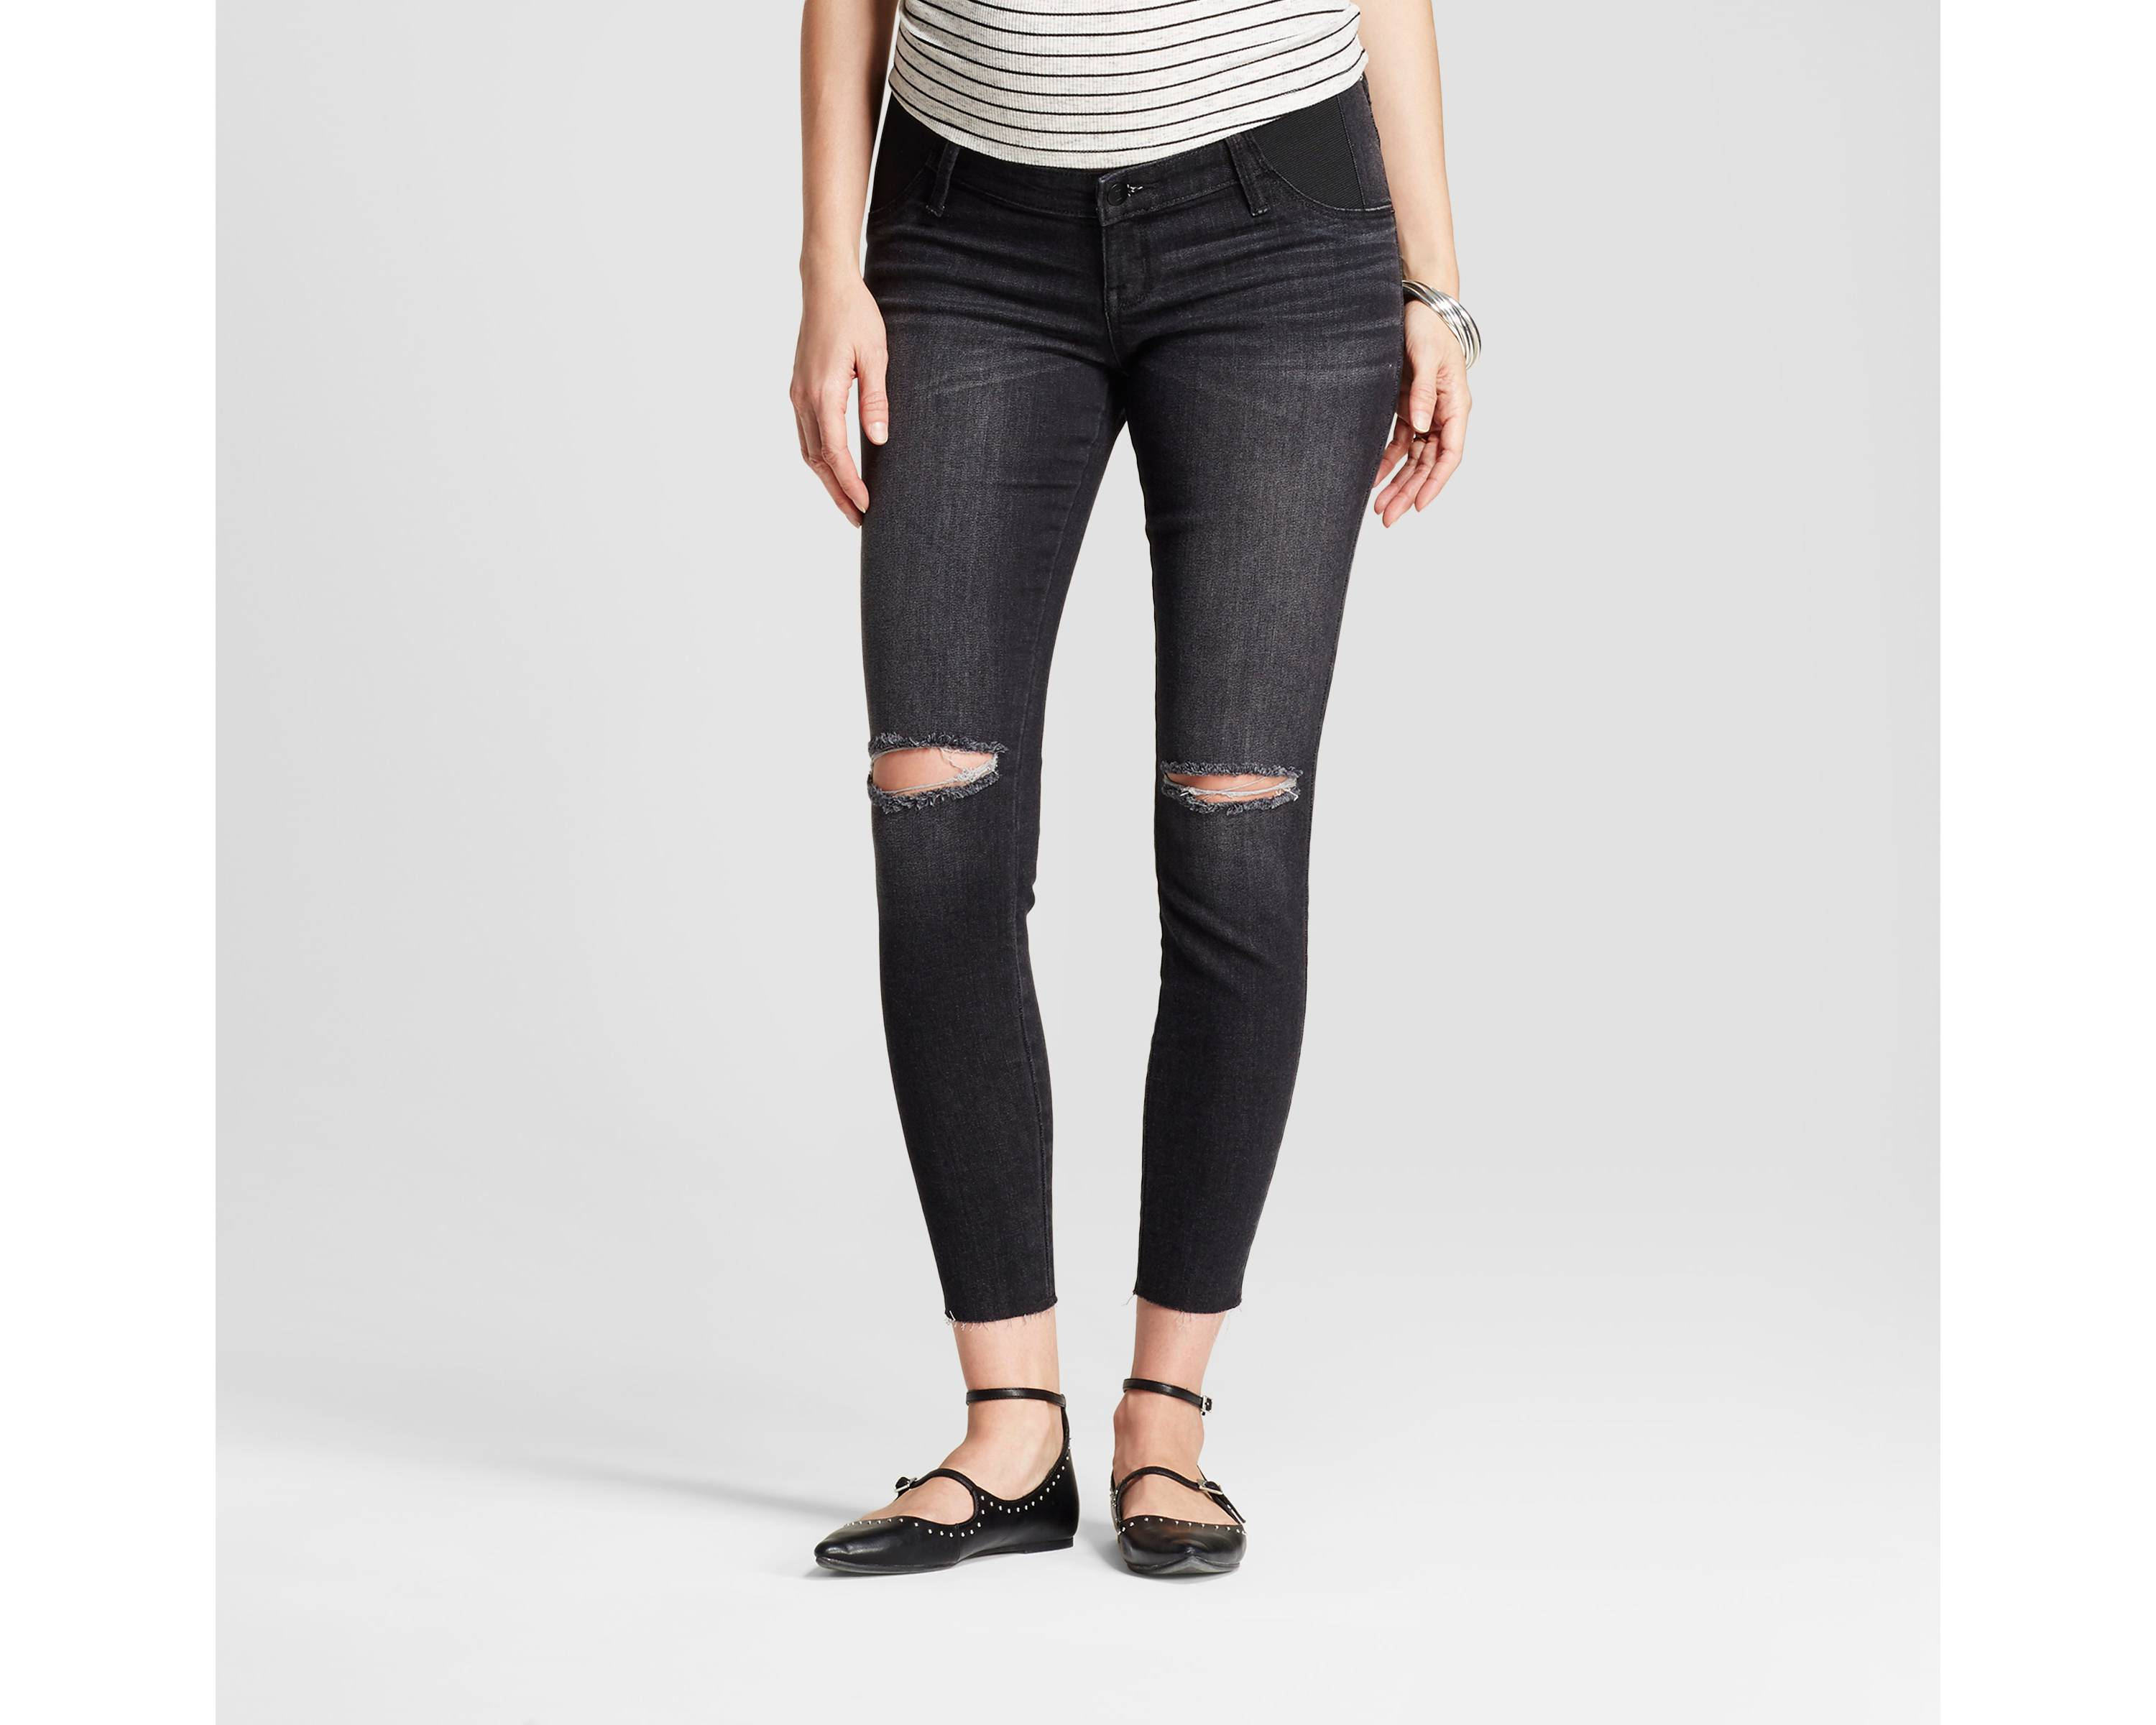 Isabel Maternity jeans review at Target